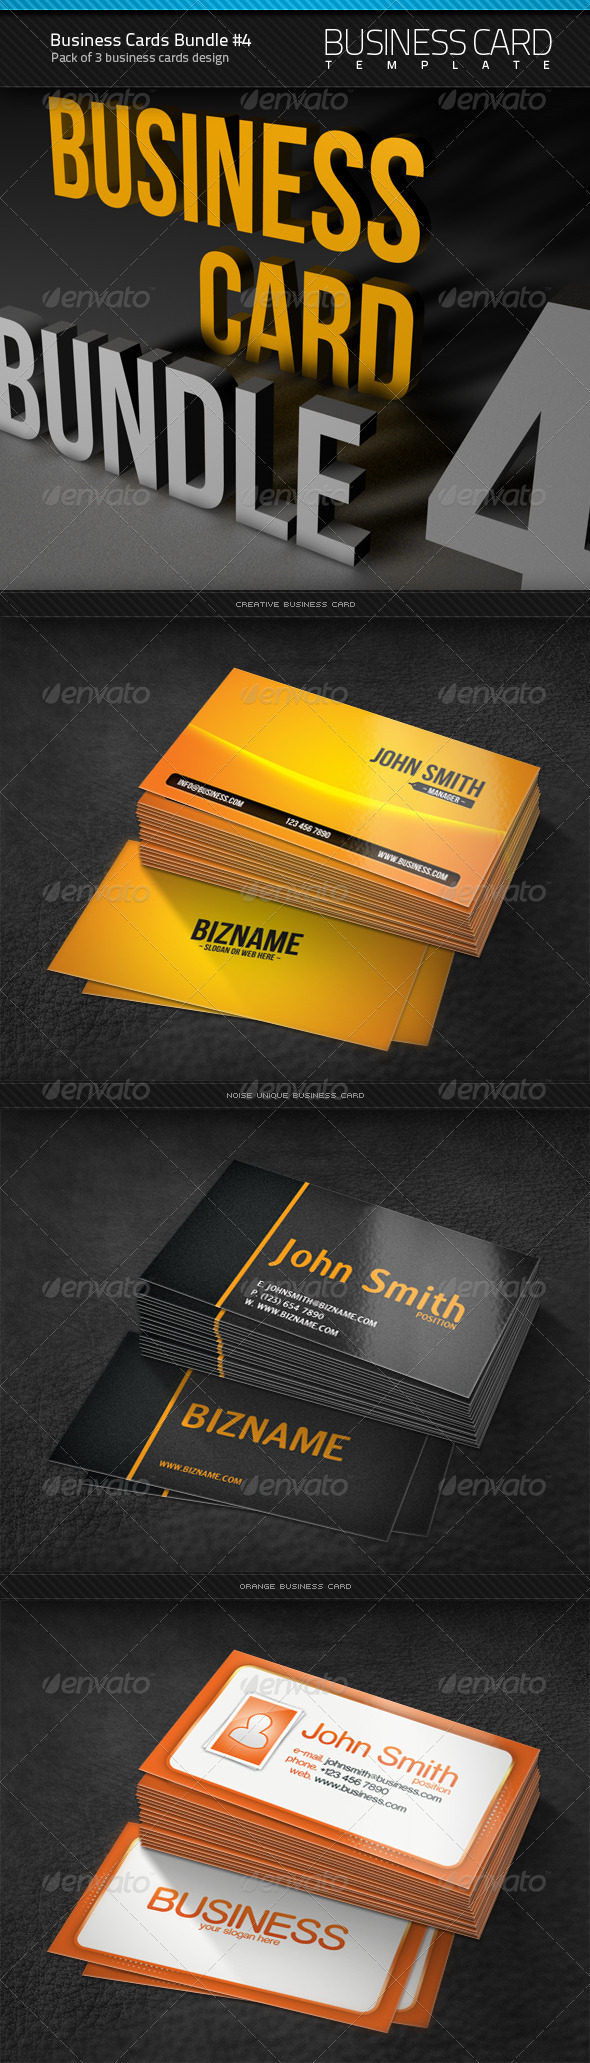 GraphicRiver Business Cards Bundle #4 1574433